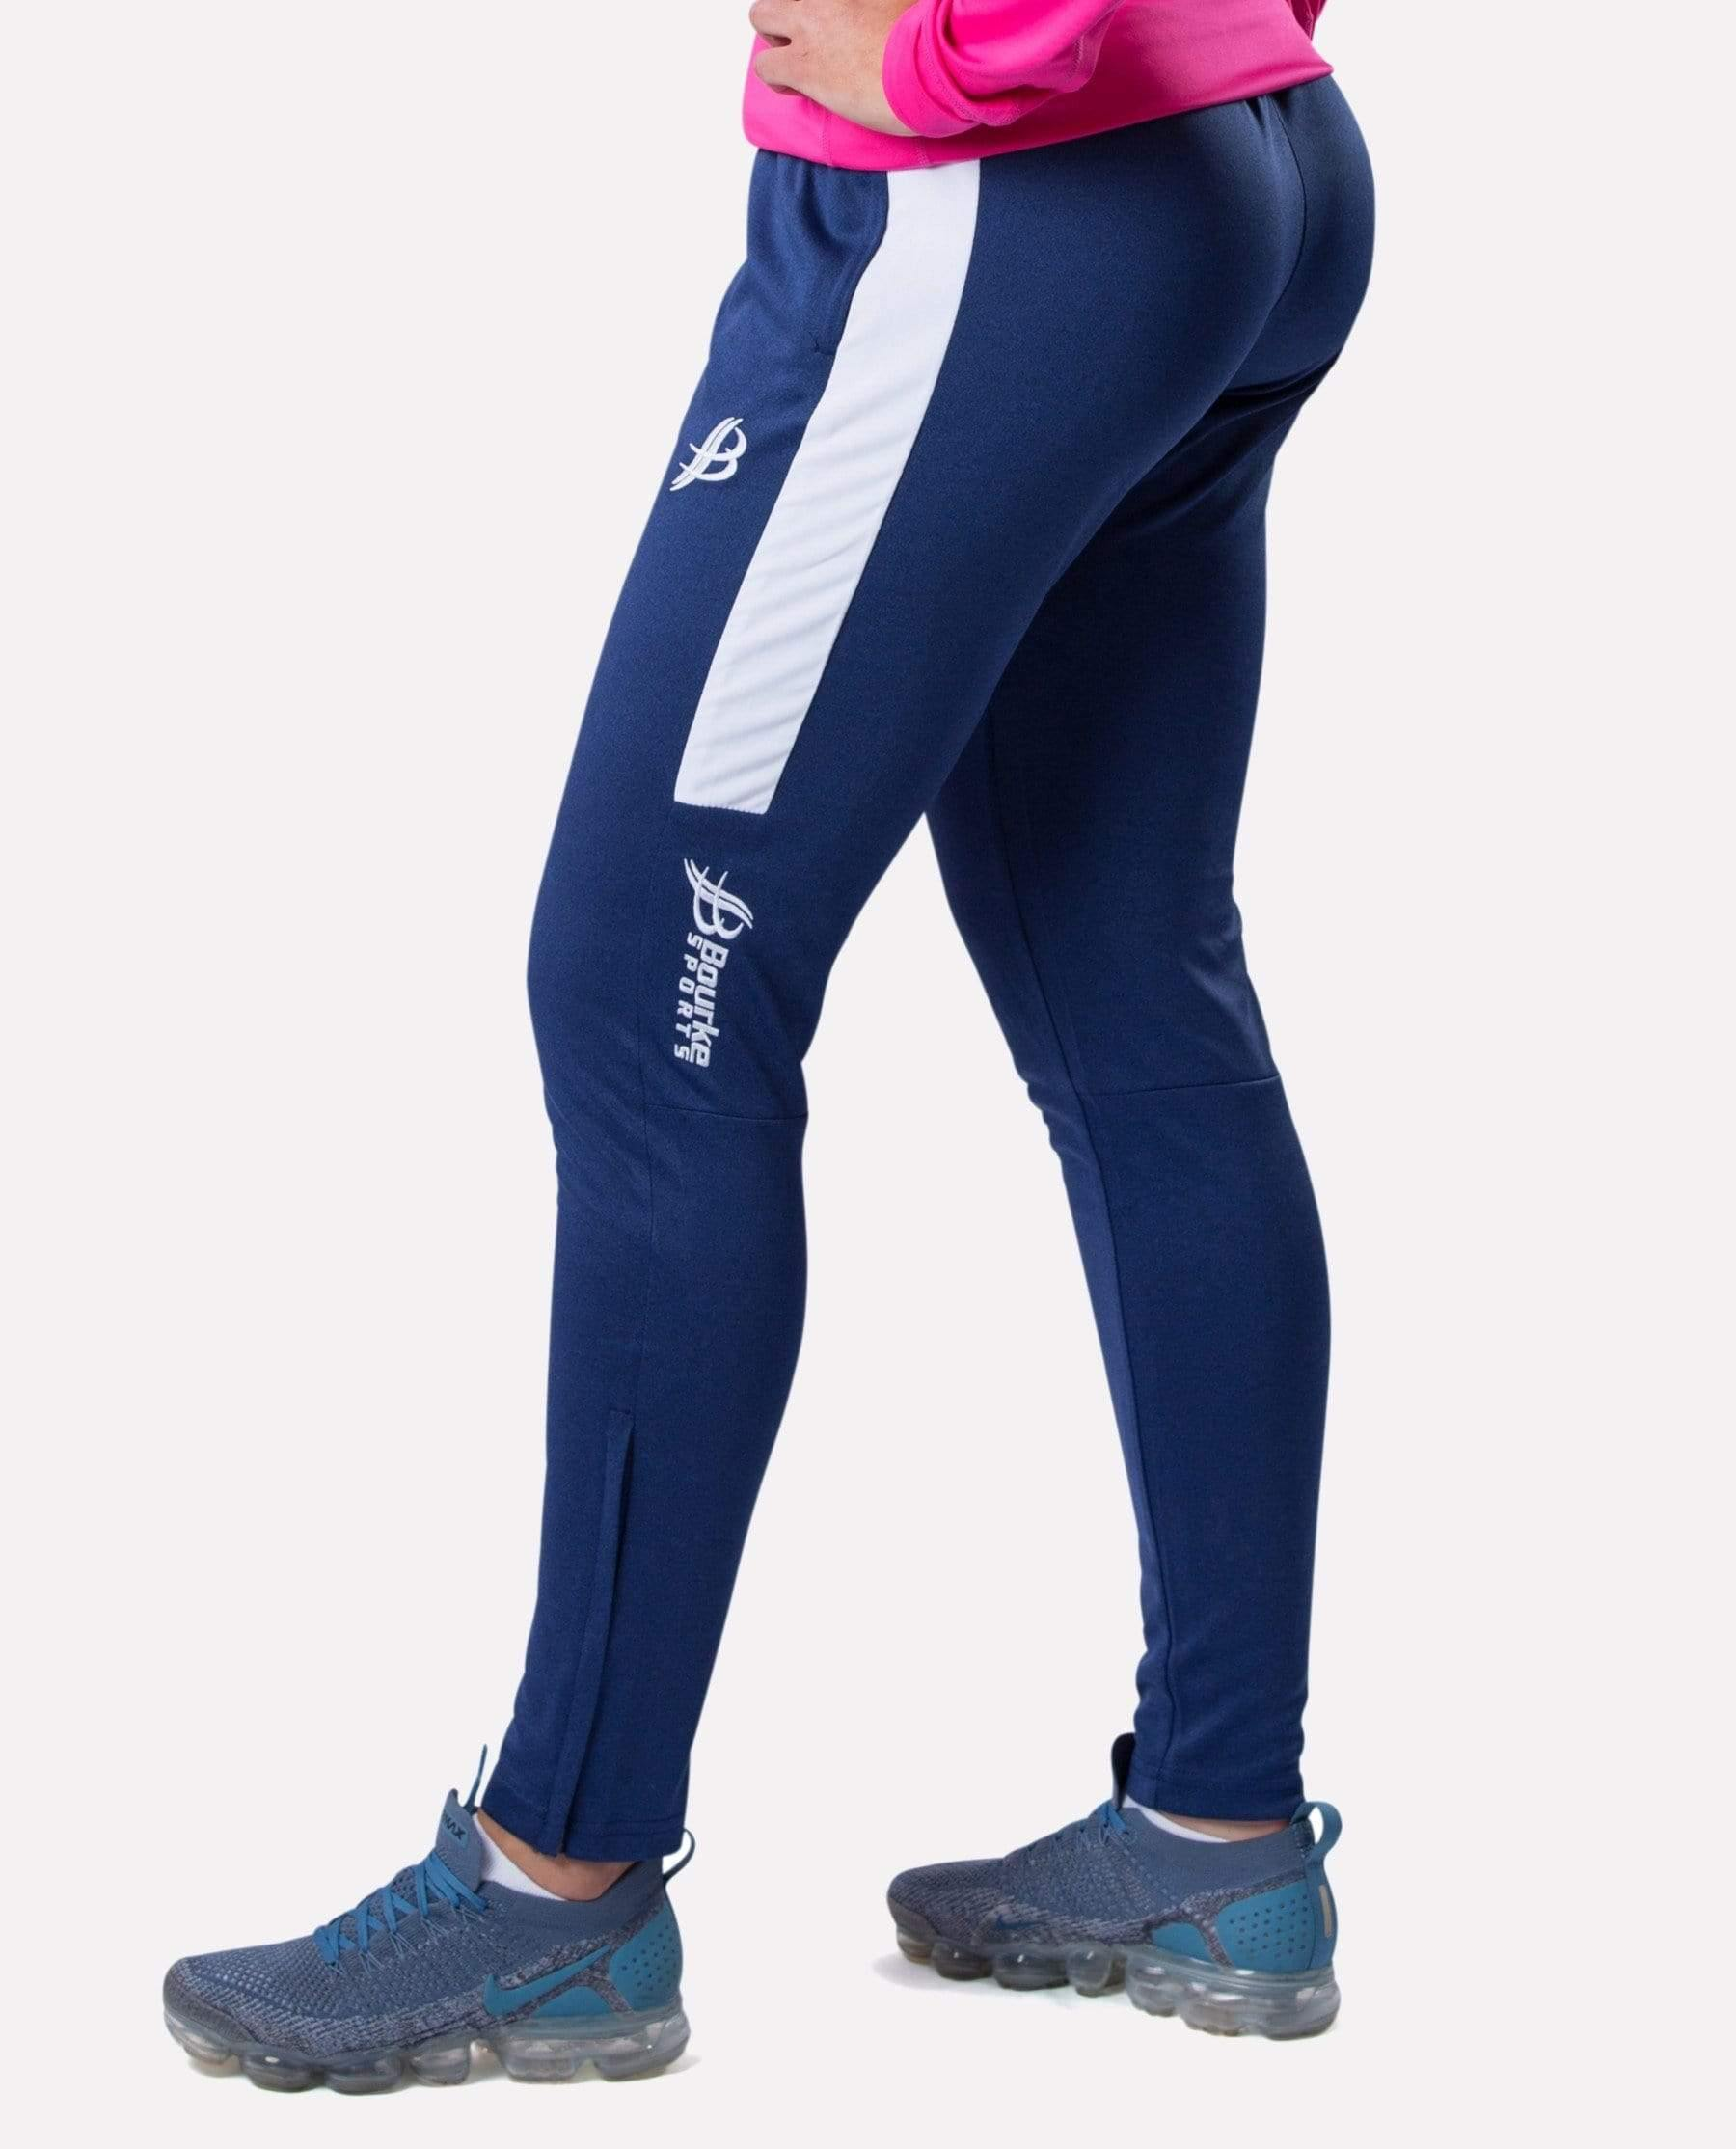 ALPHA Adult Skinny Pants (Navy/White) - Bourke Sports Limited